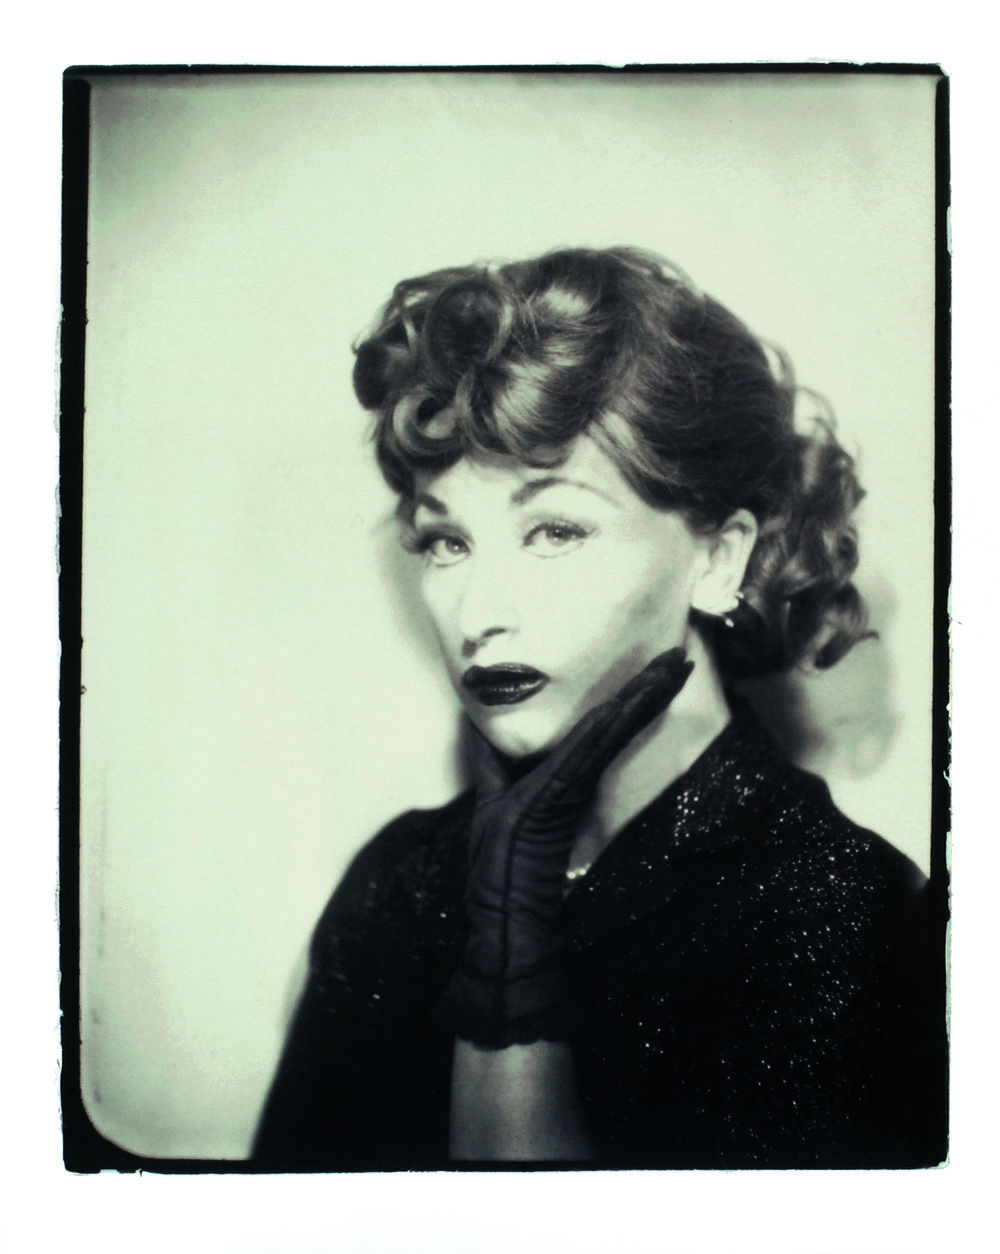 Cindy Sherman, Untitled (Lucy),1975/2001, © Cindy Sherman , Courtesy of Metro Pictures, New York / The SAMMLUNG VERBUND Collection, Vienna